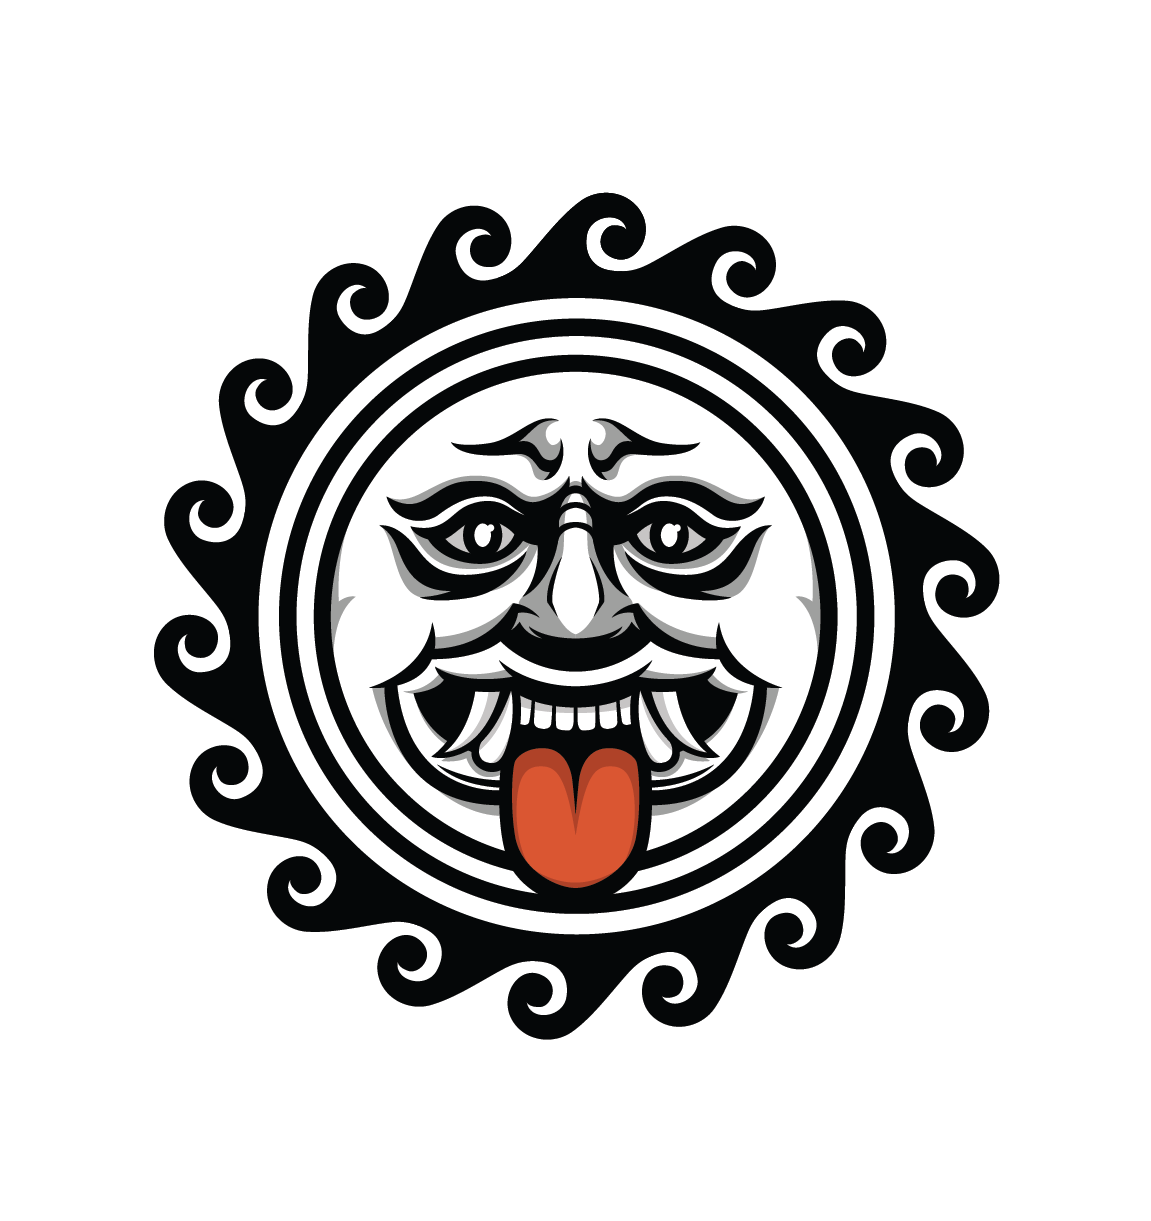 Ophir Design Studio